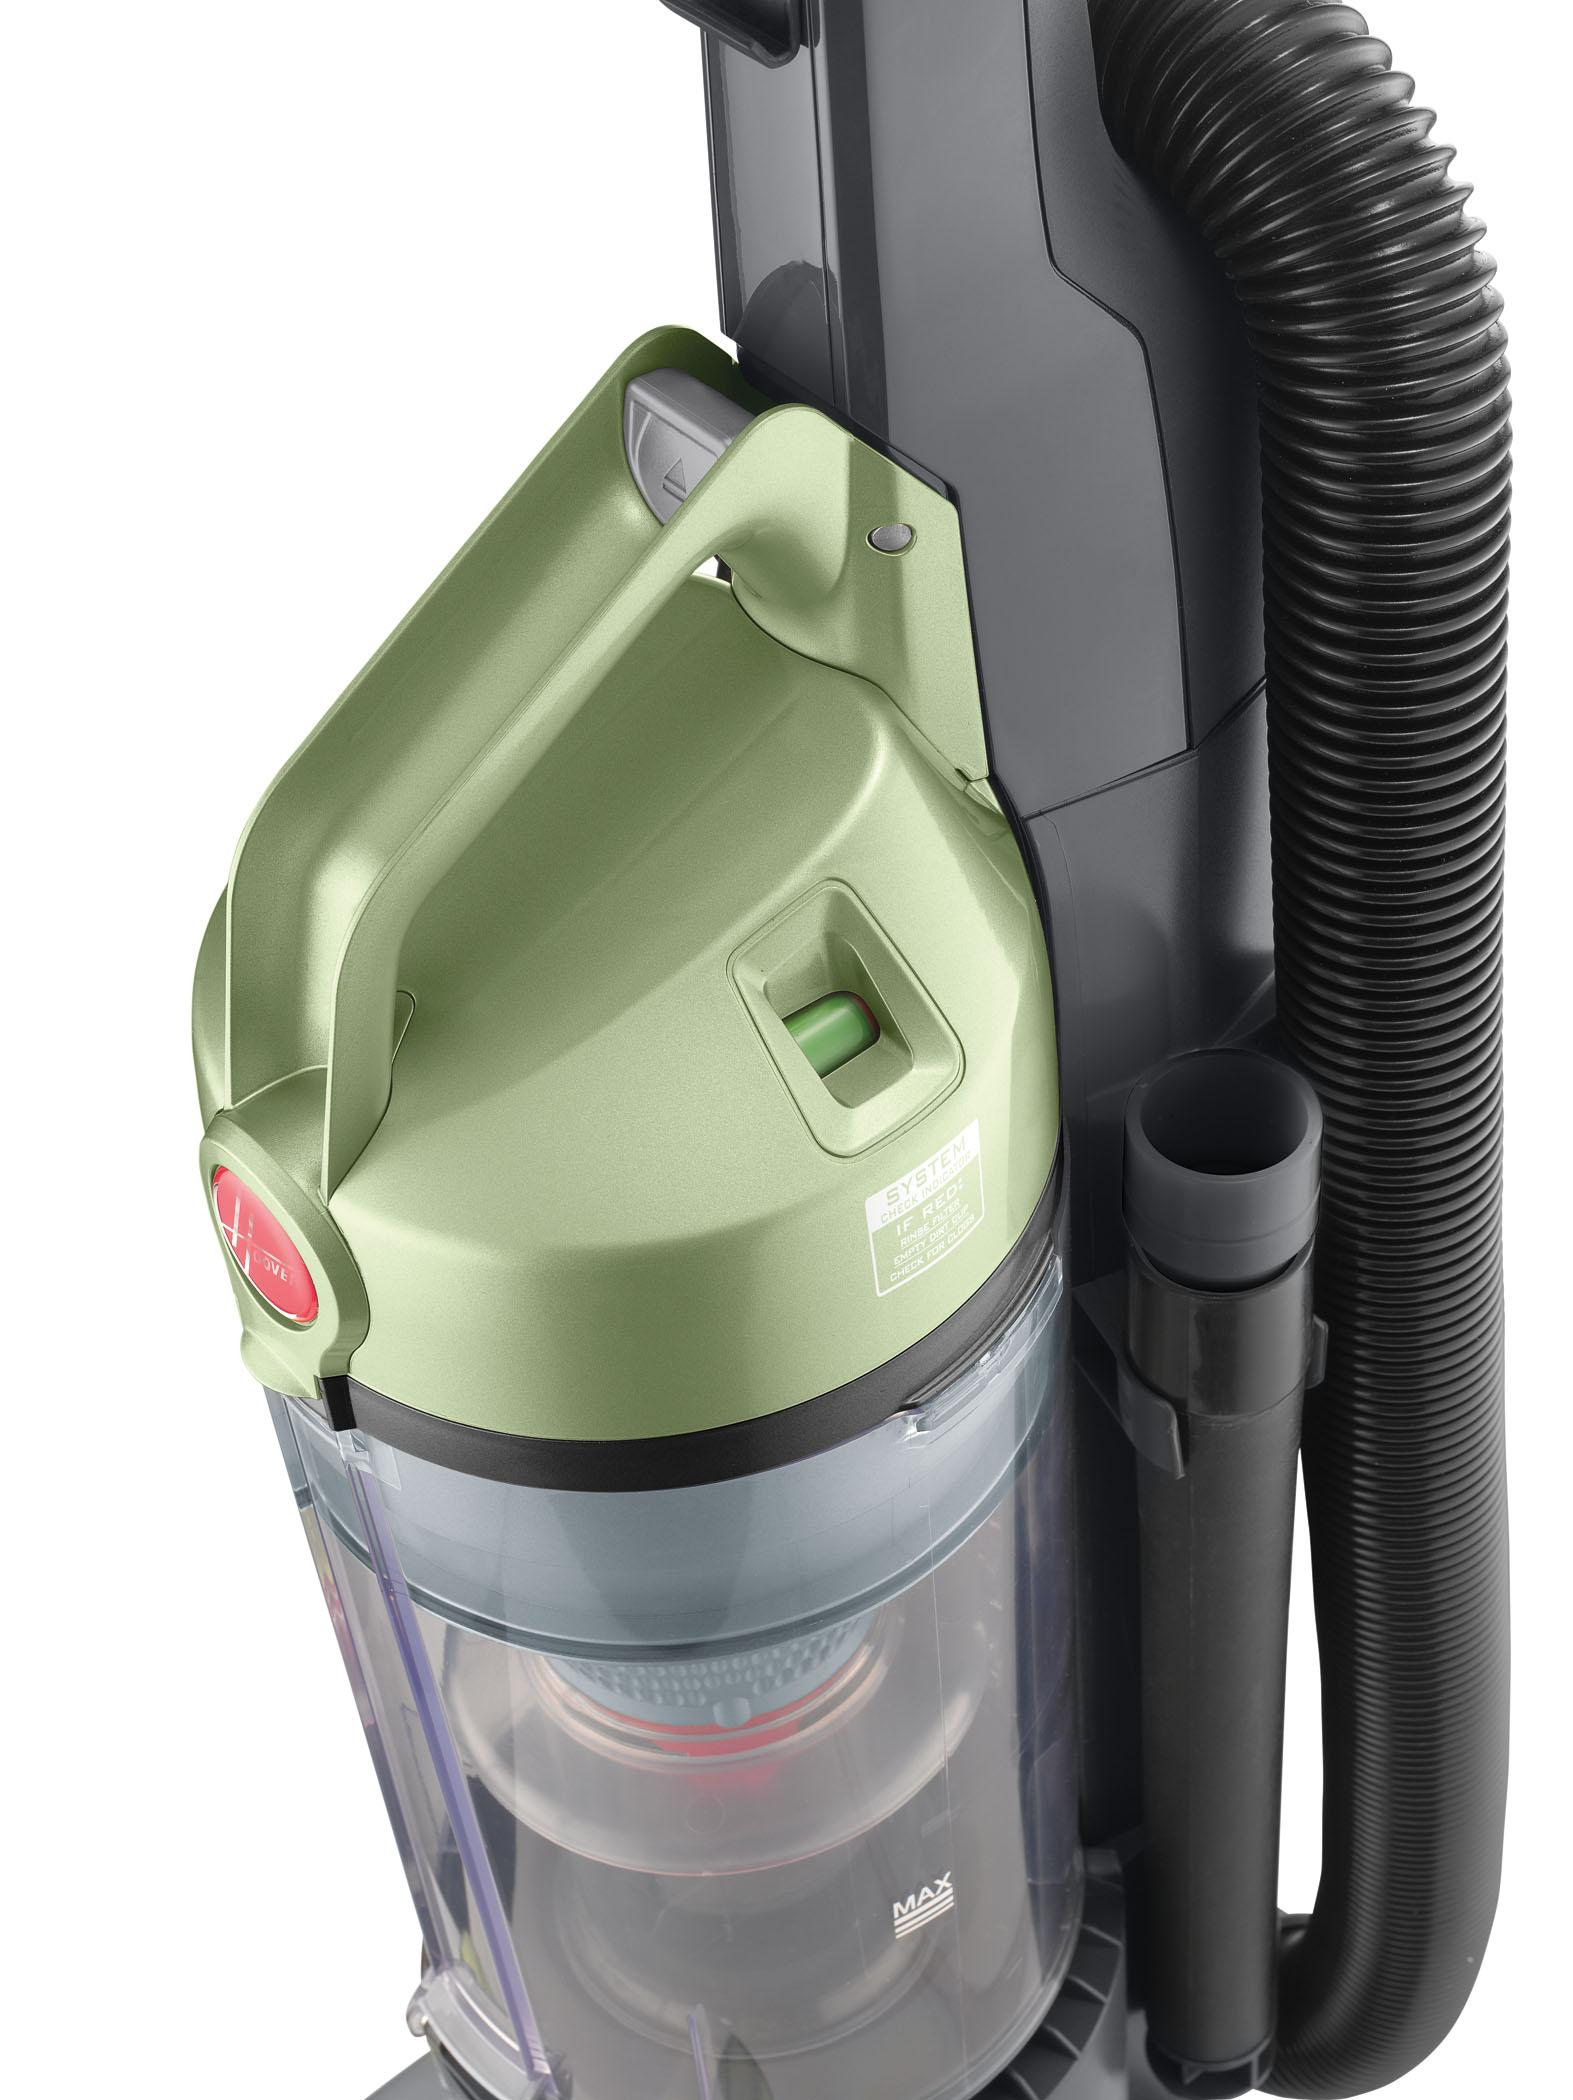 hoover t-series windtunnel rewind bagless upright vacuum uh70120 manual